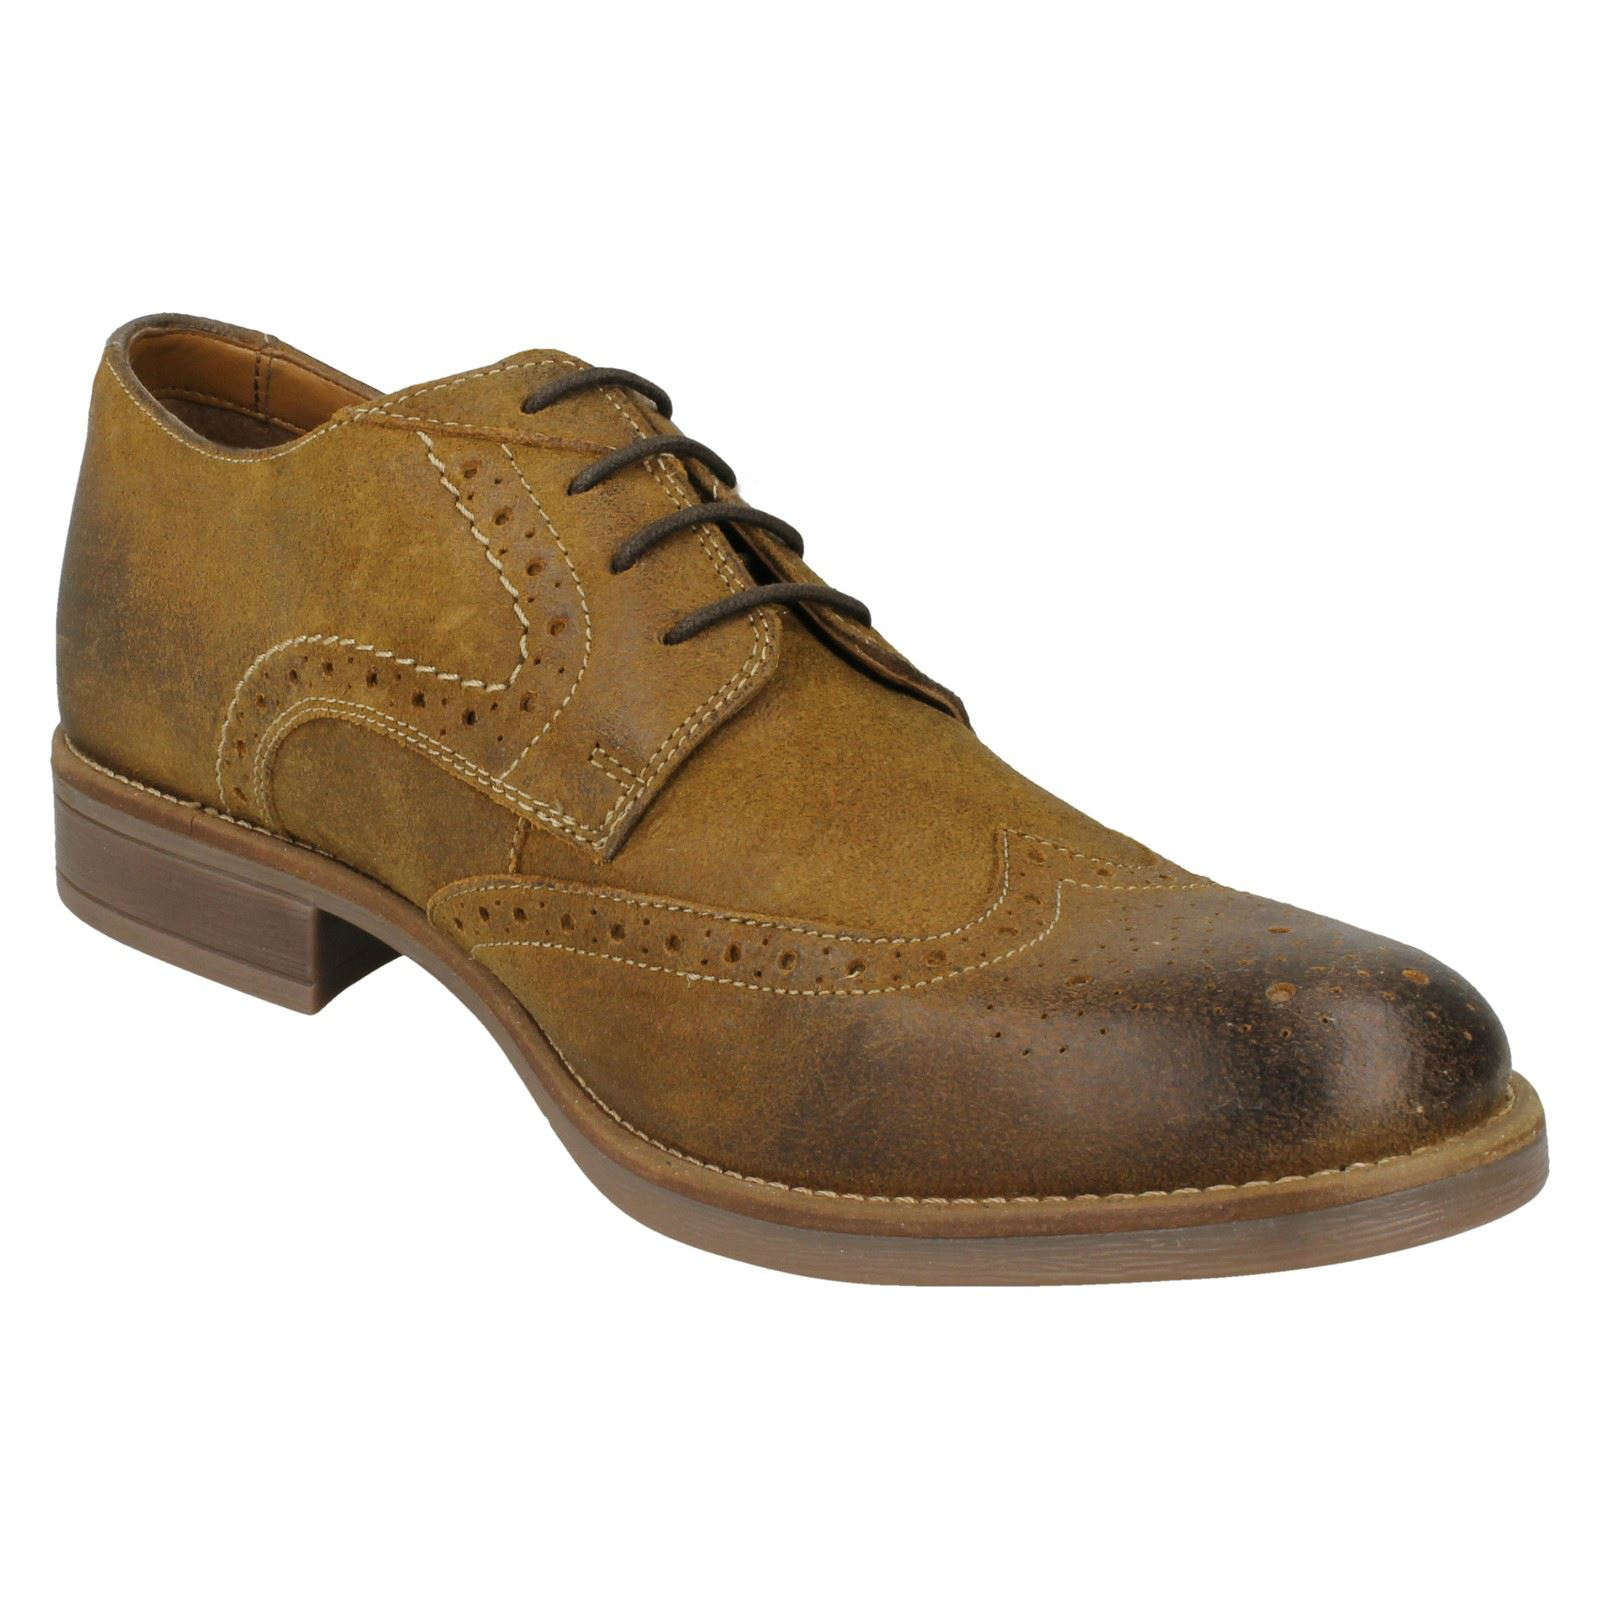 Herren Clarks Formal Limit Schuhes Fincy Limit Formal 3b7a18